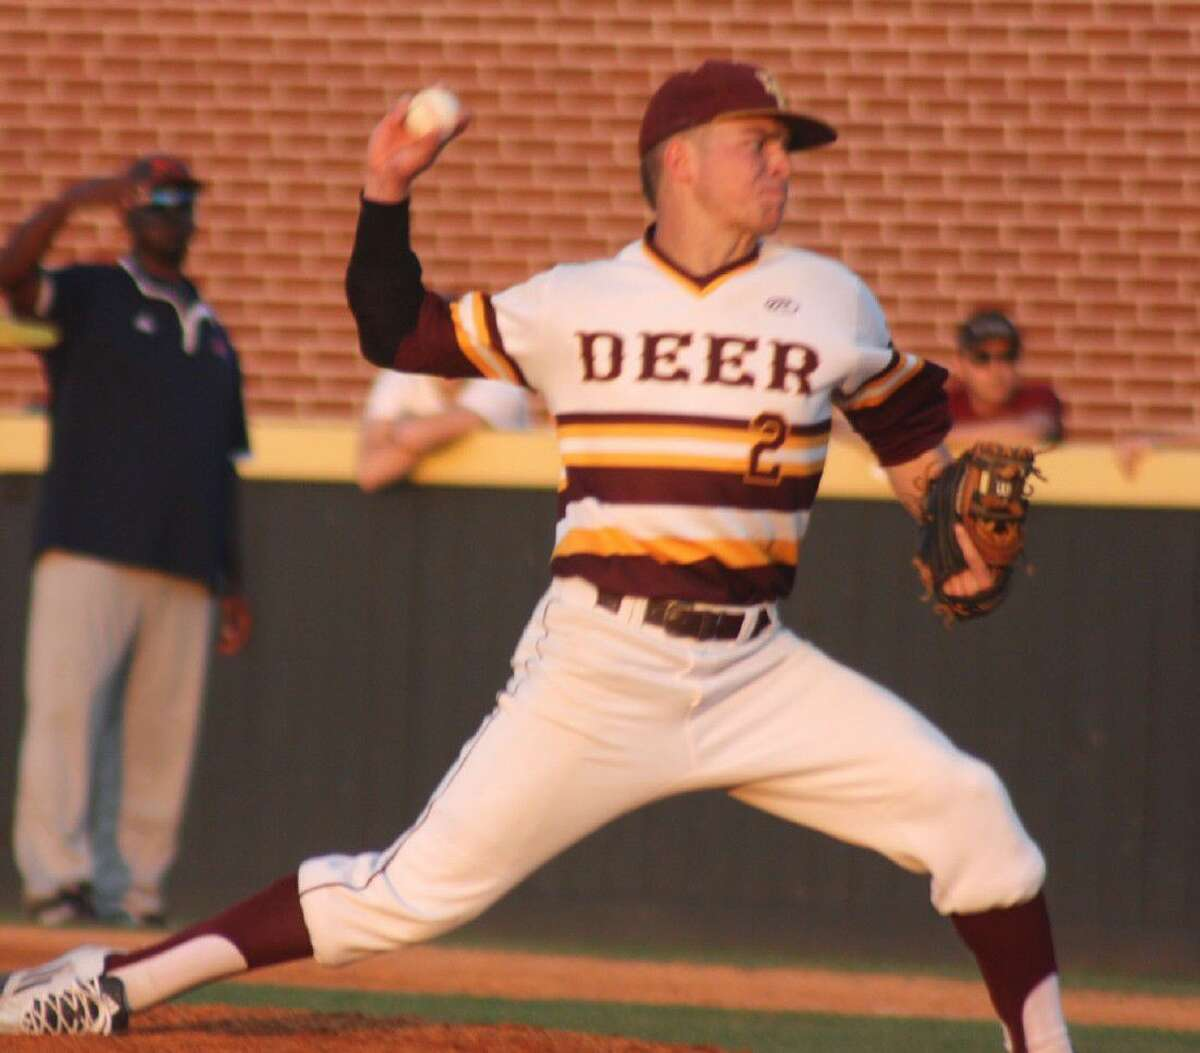 Cameron Thompson delivers a pitch to the plate during the fourth inning as he toyed with a perfect game Friday night.